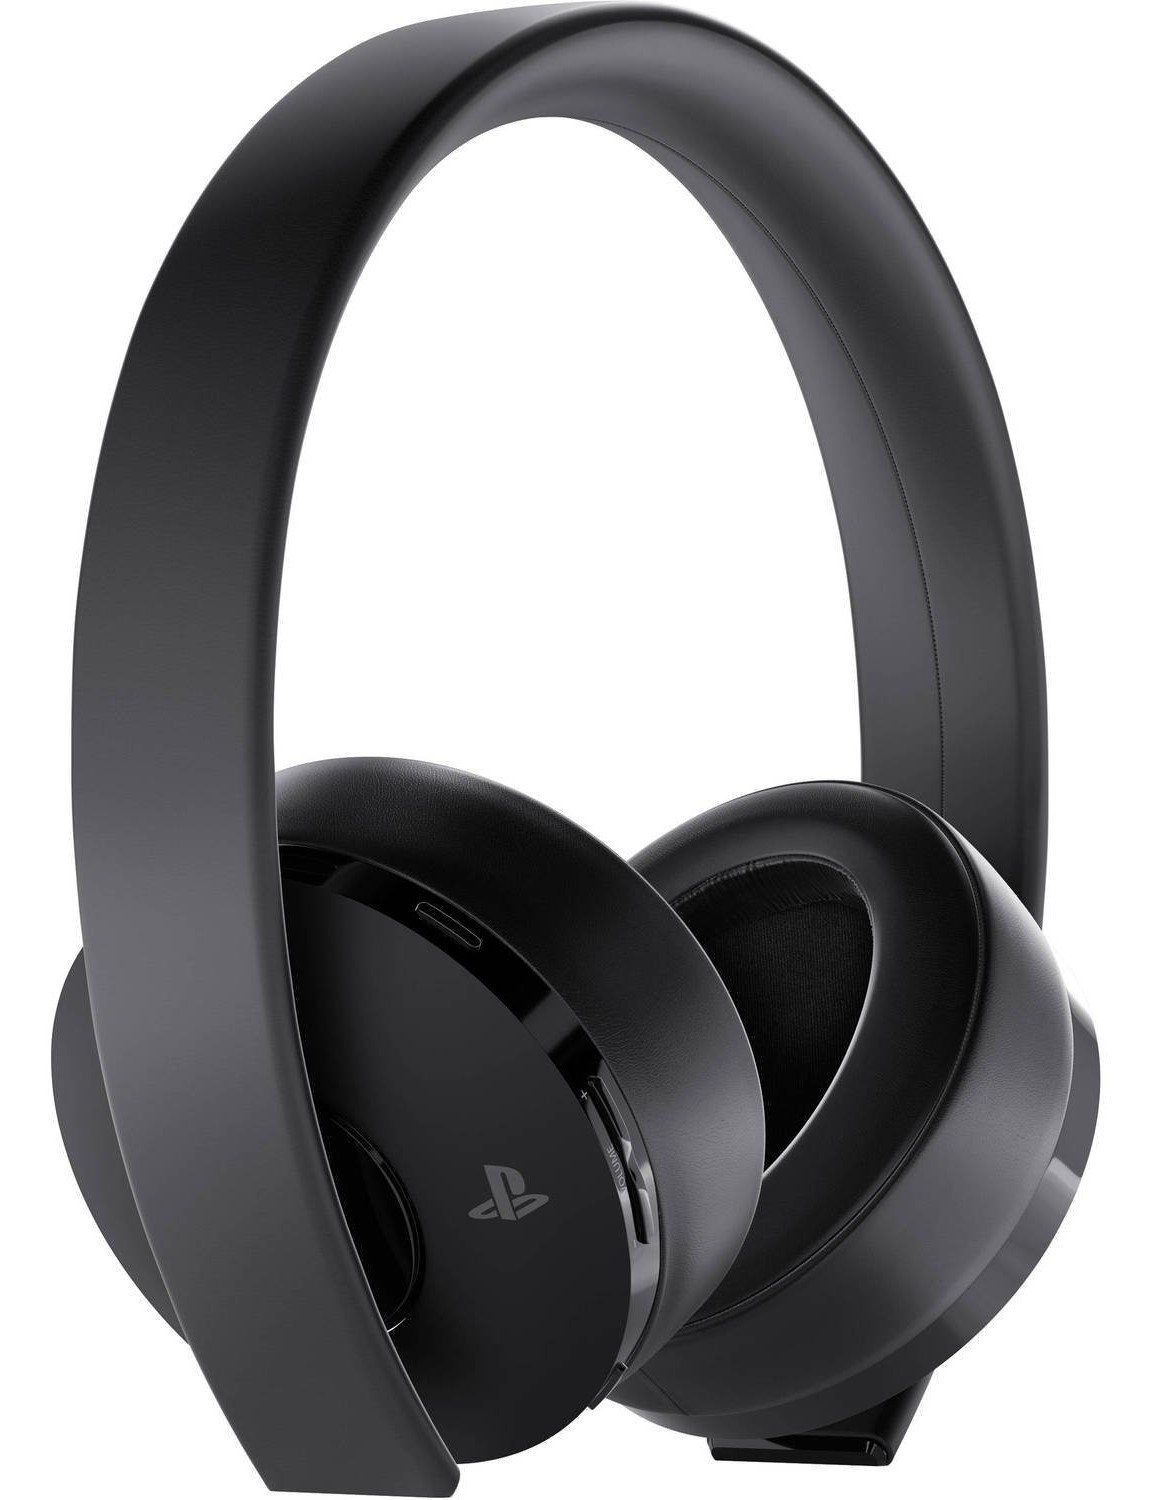 Gold Wireless Headset | Incredible